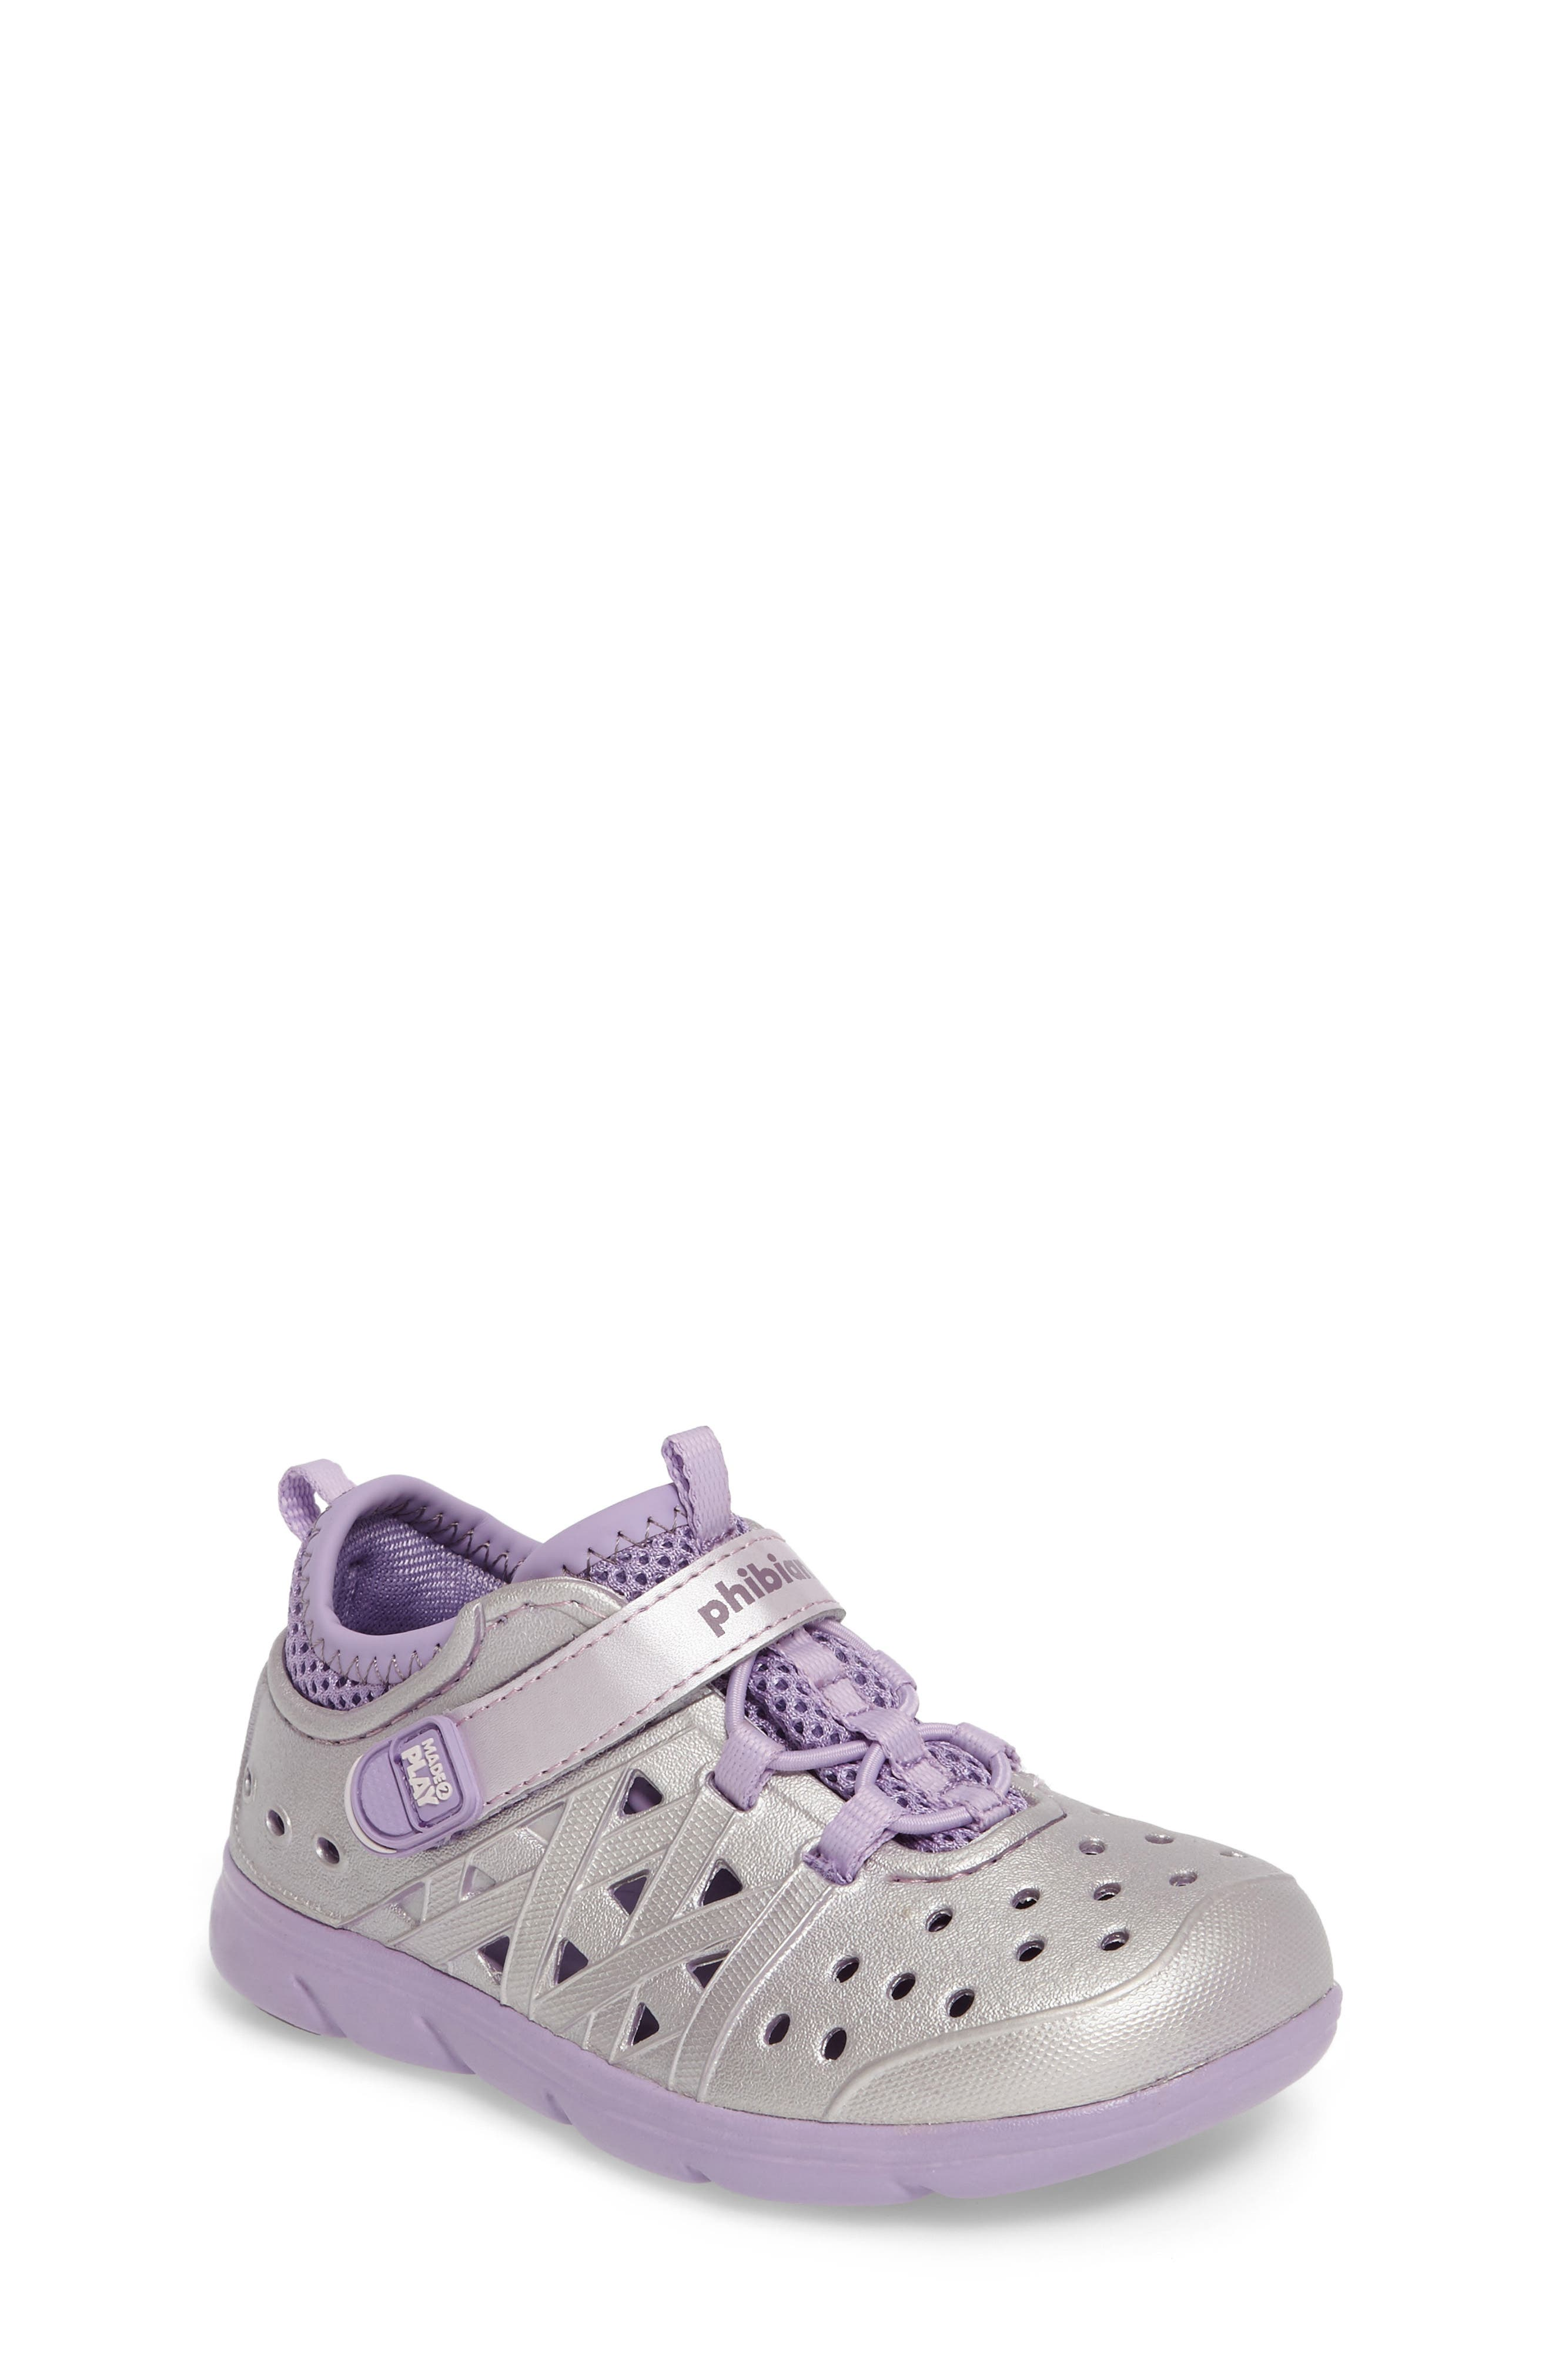 Made2Play<sup>®</sup> Phibian Sneaker,                             Main thumbnail 1, color,                             Purple Metallic